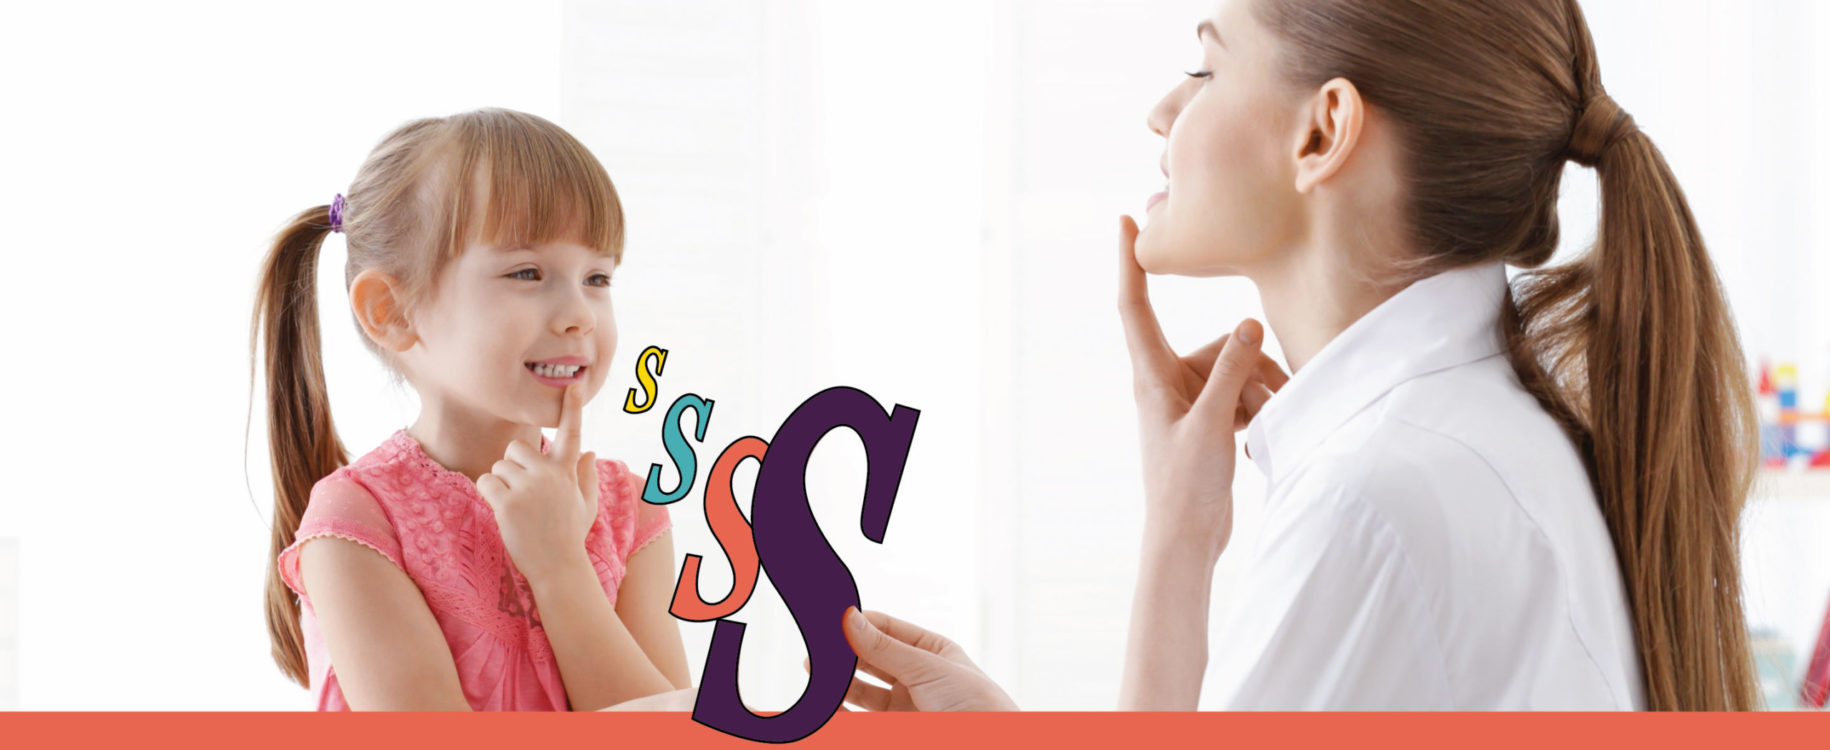 Five signs you may need speech therapy